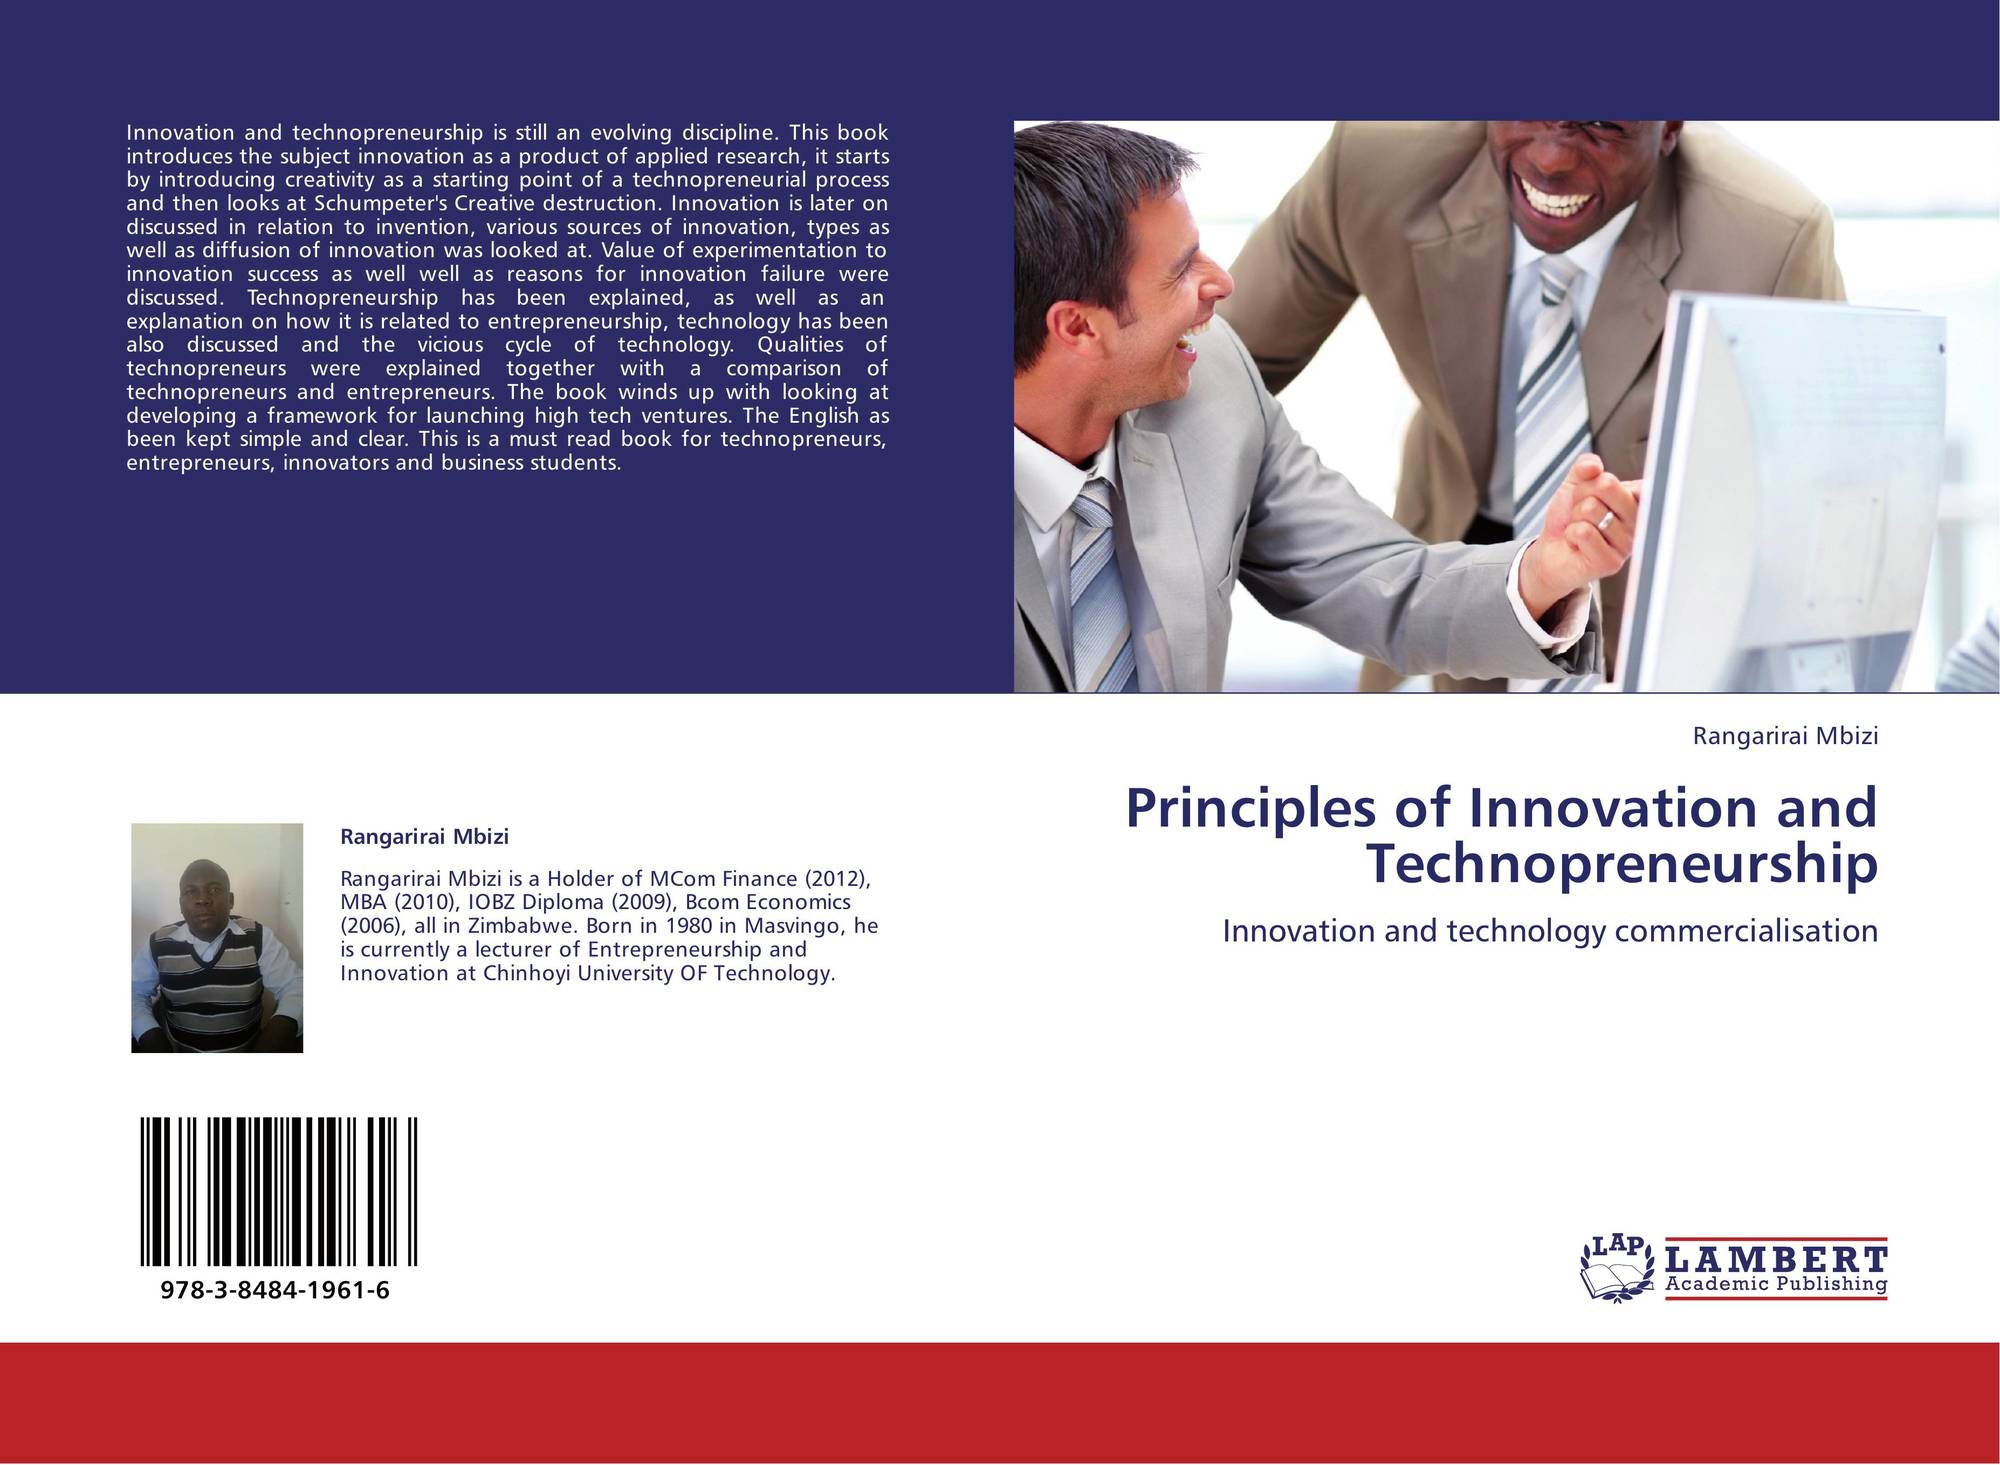 process technoperurship This process of technopreneurship promotes and enables startups, which in turn improves the socio-economic picture of a particular region.